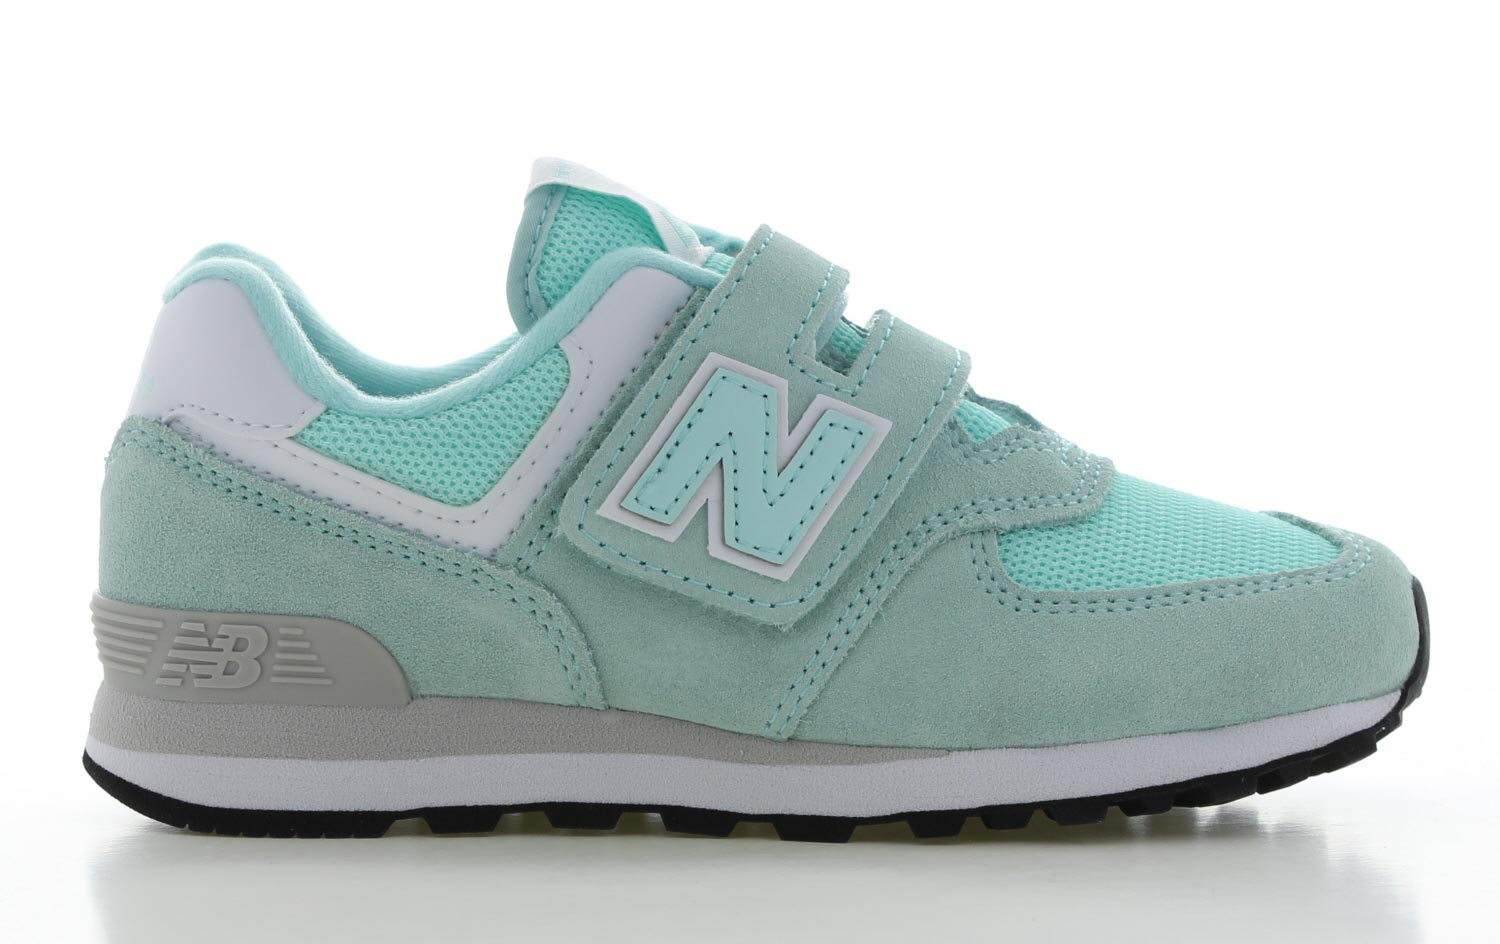 New Sneakers Yv574el Balance 700280 Turquoise nl Kinderen 22 40 44a0rqn7